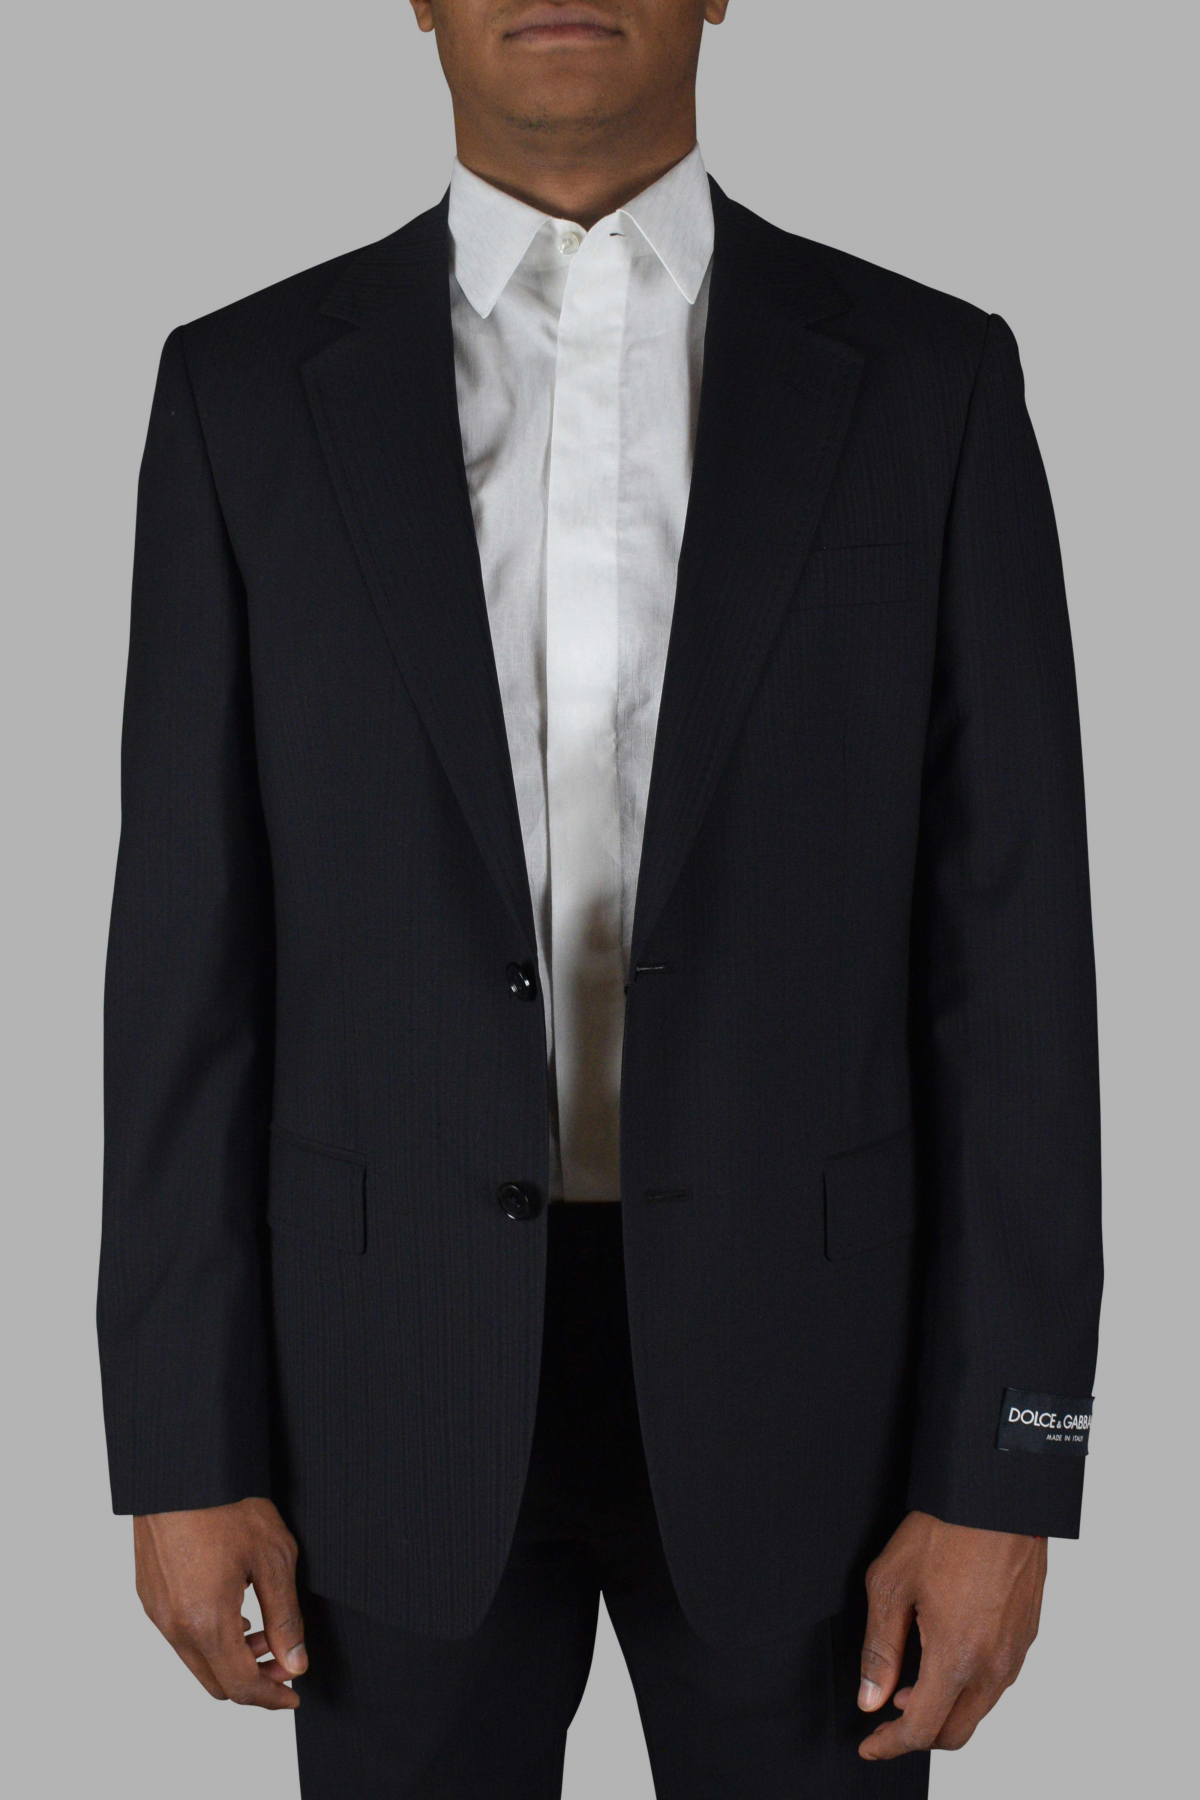 Black two-piece suit from Dolce & Gabanna with tone-on-tone stripes.